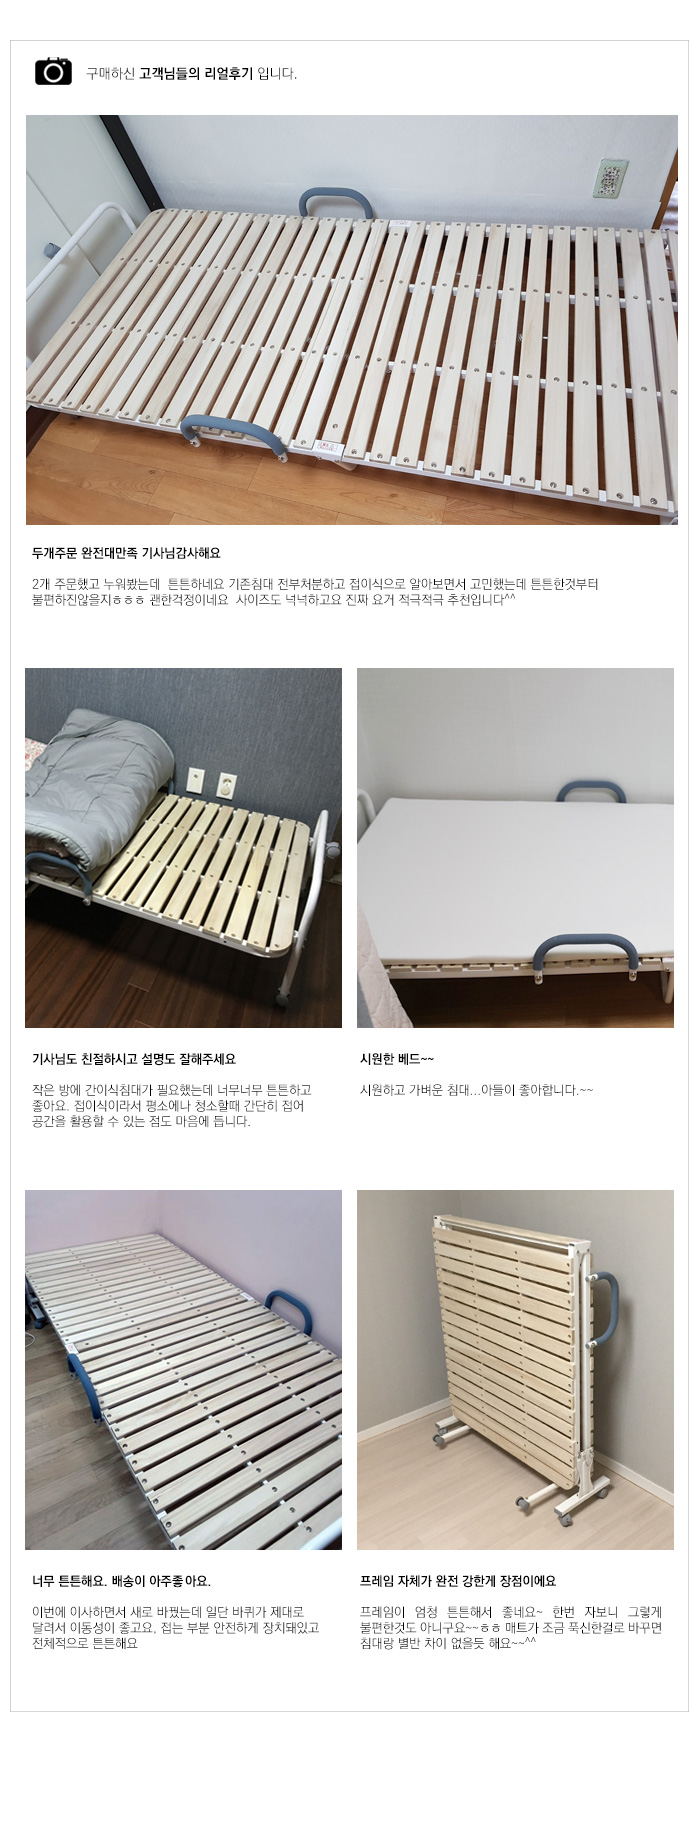 1_9_ZD-119-White_Folding_Bed-1_add.jpg